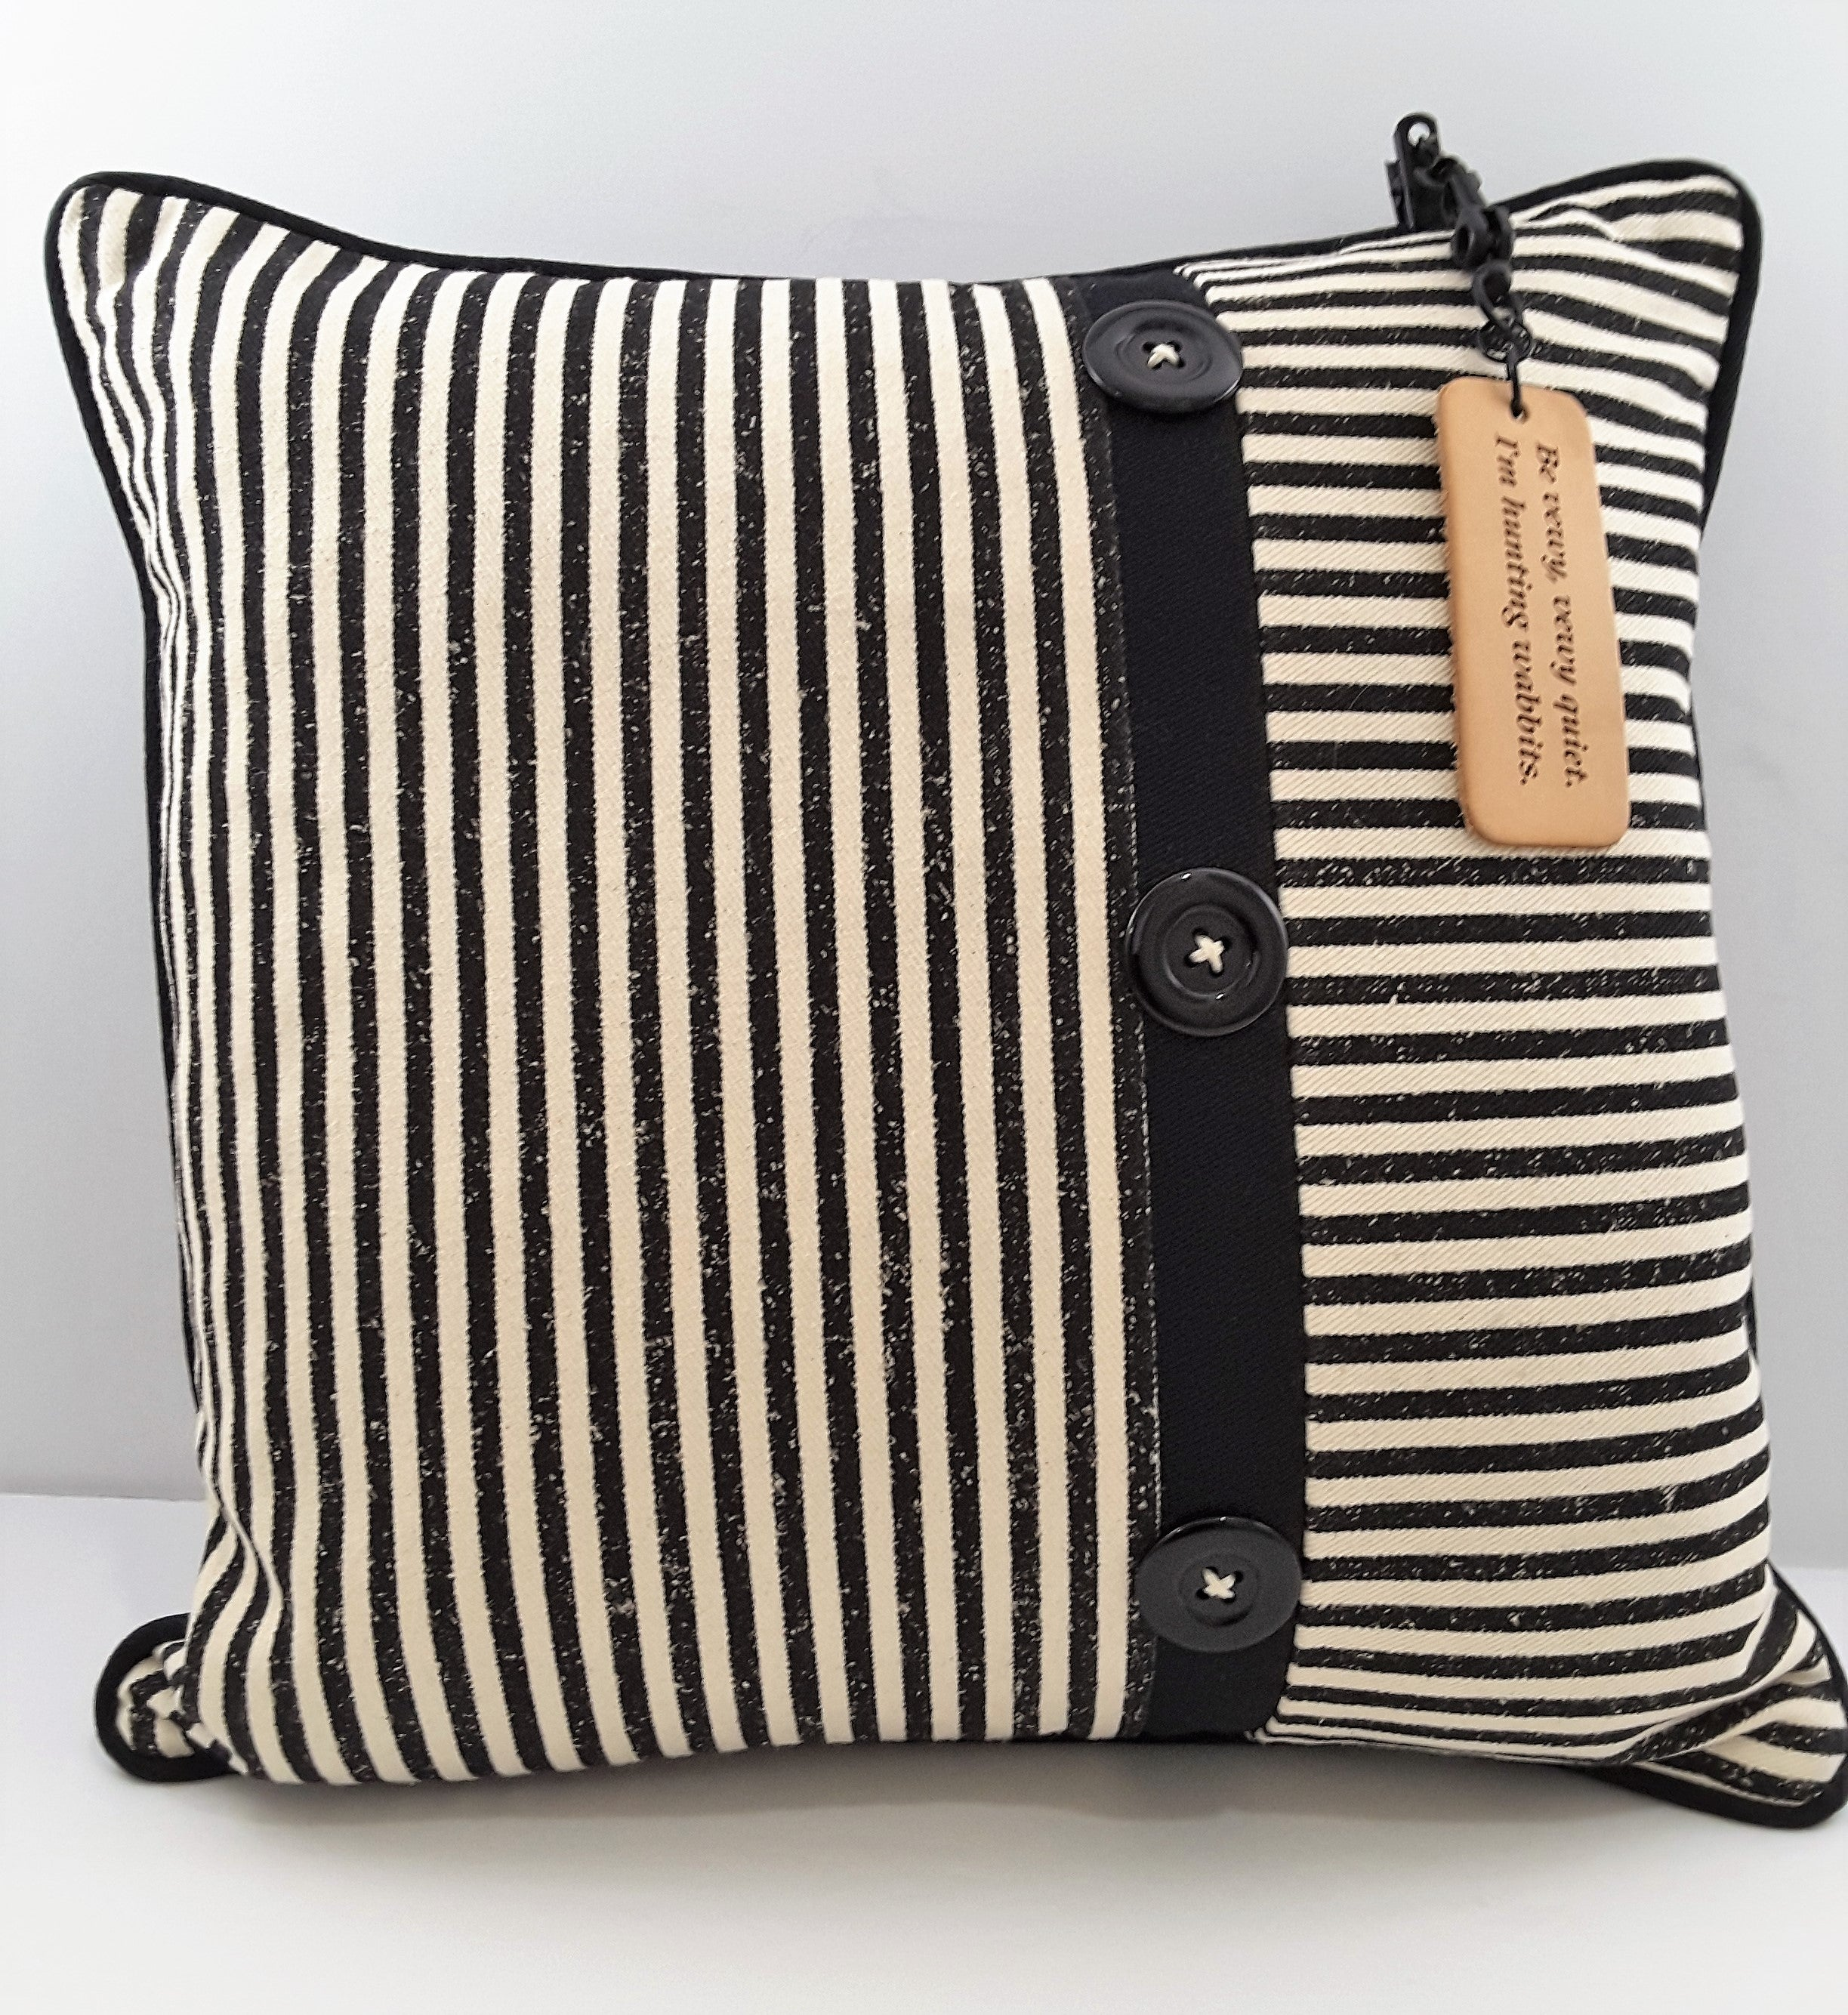 HANGING LEATHER PILLOW TAG ON BLACK AND NATURAL STRIPE PILLOW